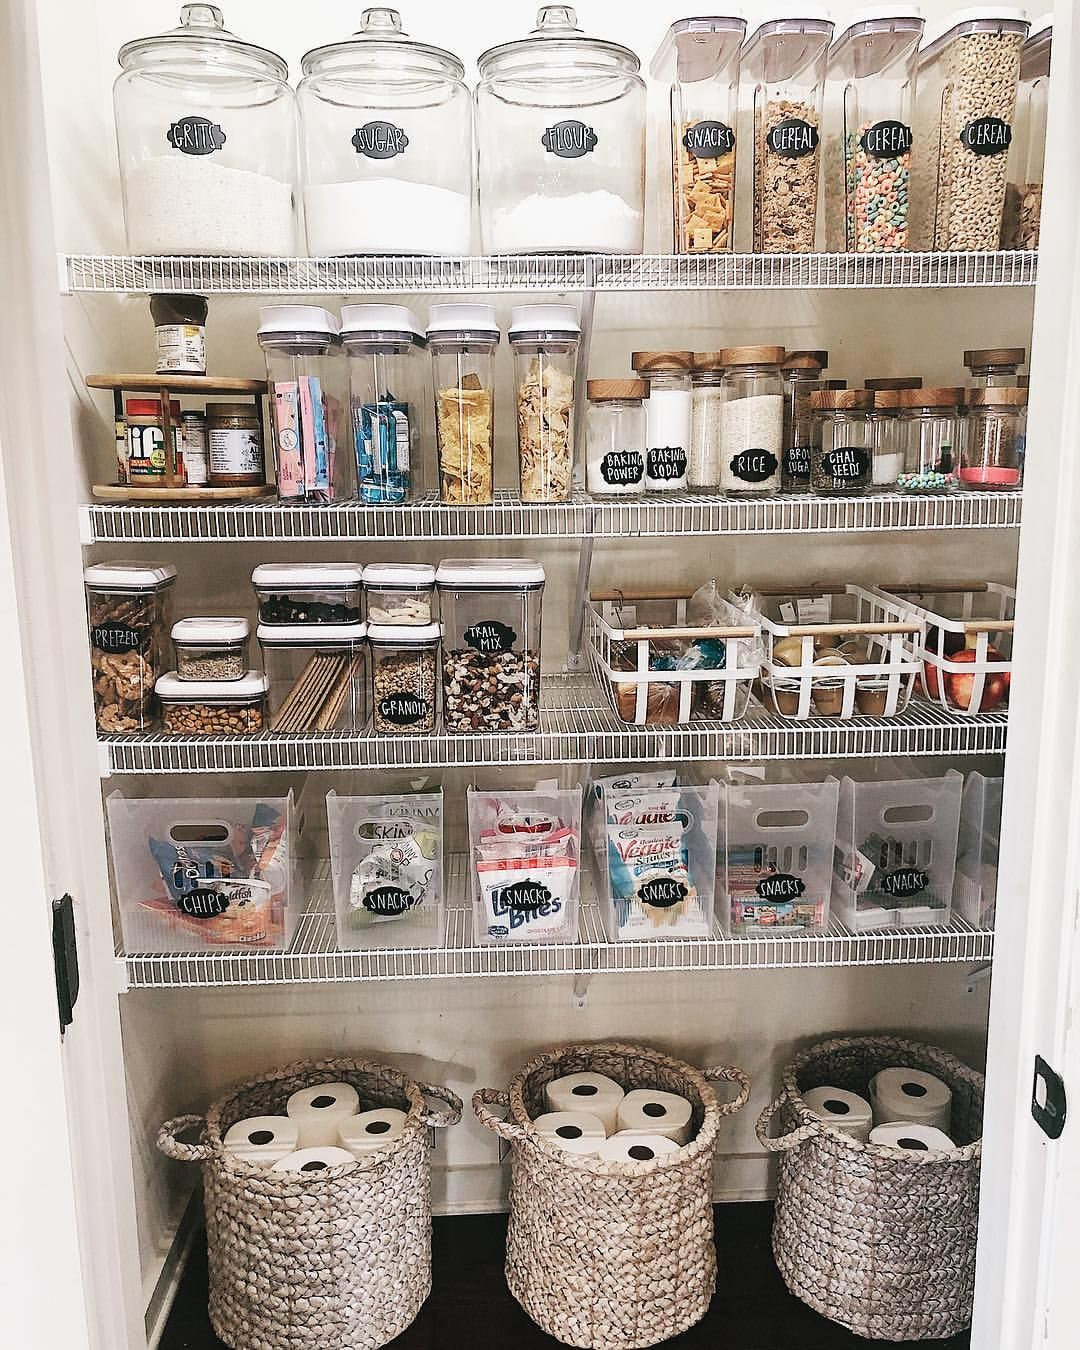 Happy Thursday evening friends😍! I have been so excited about this reveal and to finally share with you our entire organized pantry! Let's…